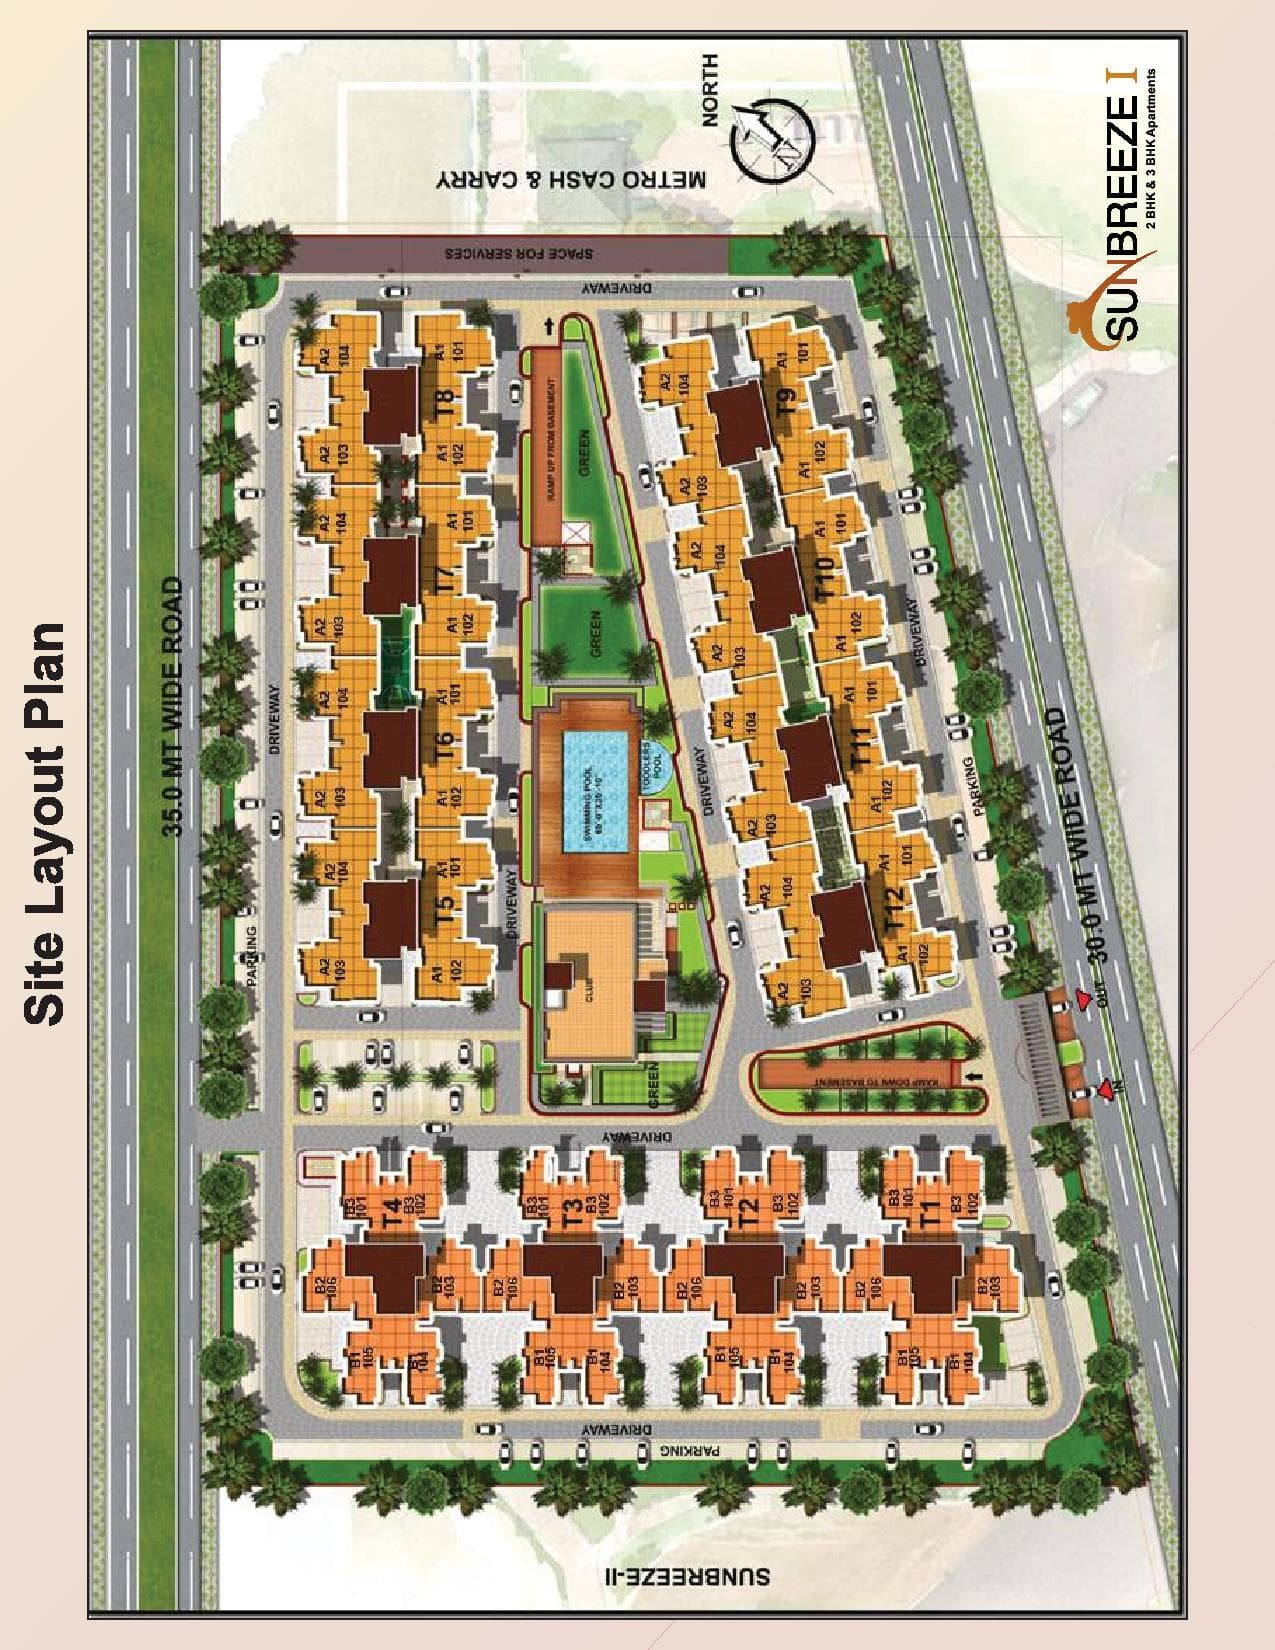 Sun Breeze I Site Layout Plan